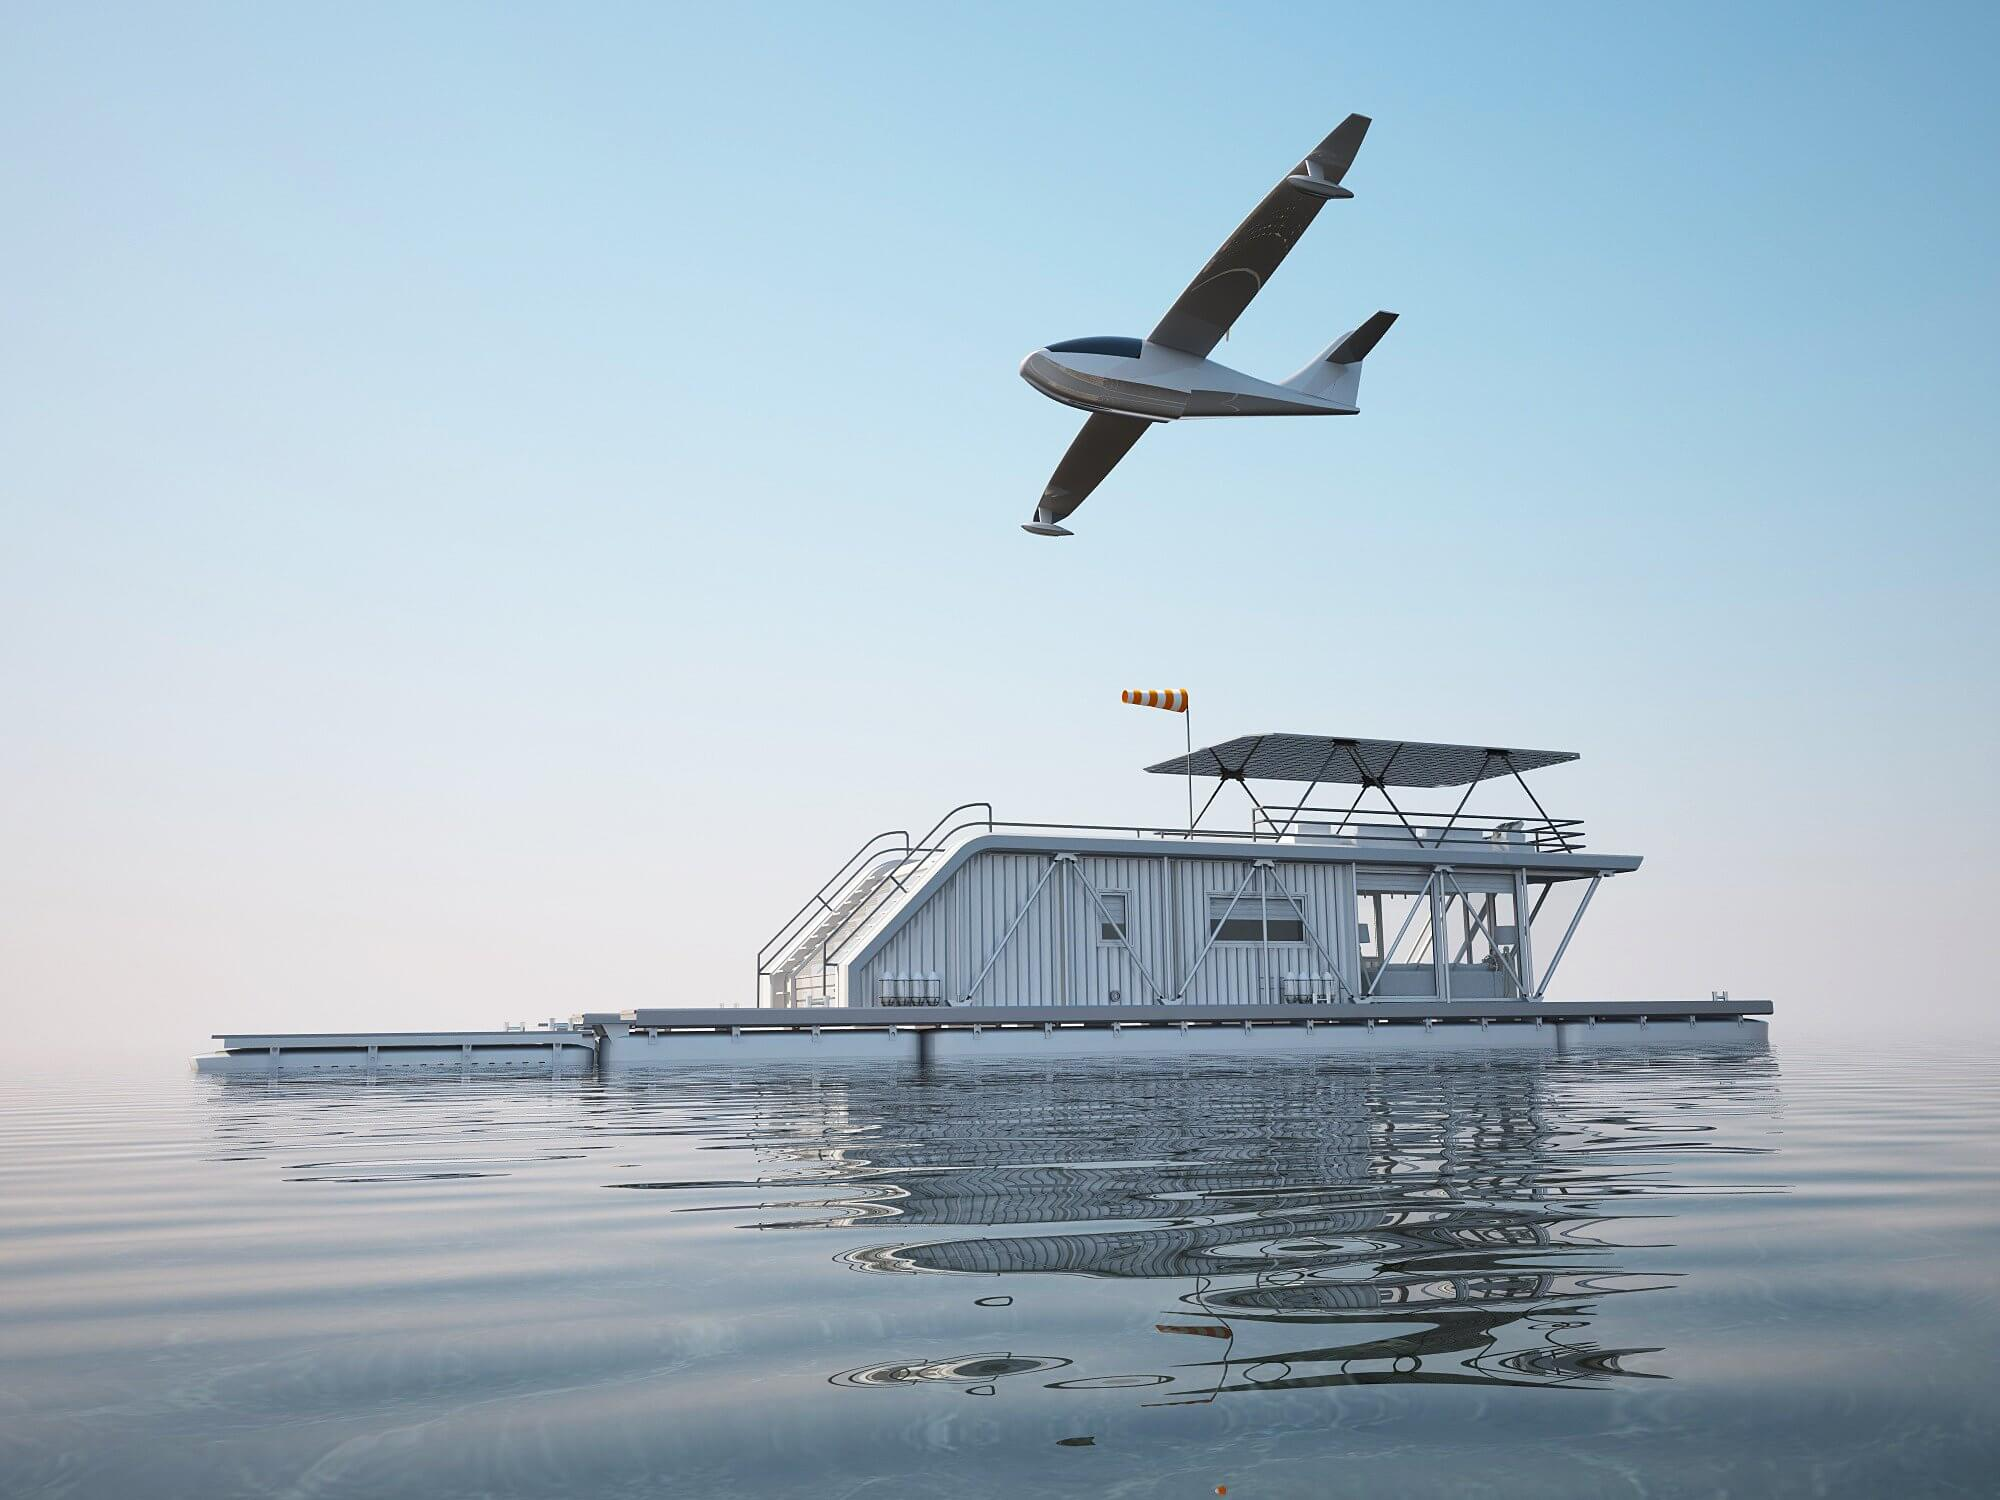 The sky is the limit with this houseboat aquaplane combination